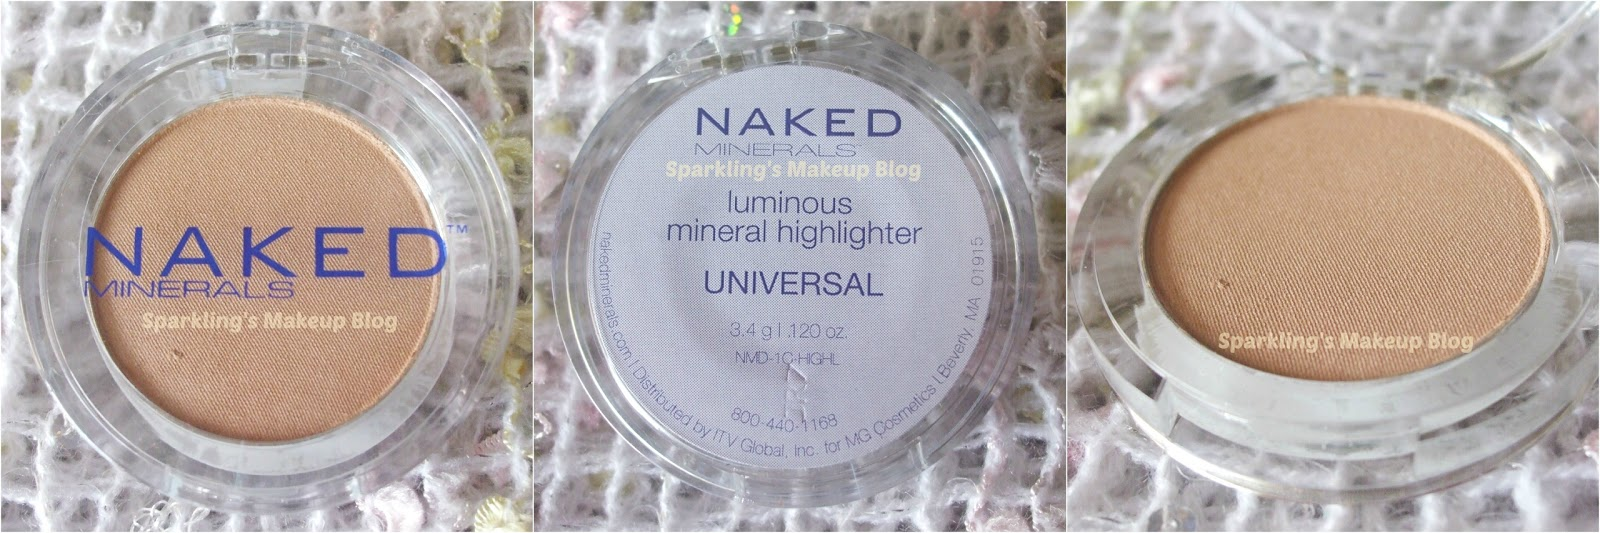 Naked Minerals Luminous Mineral Highlighter Universal